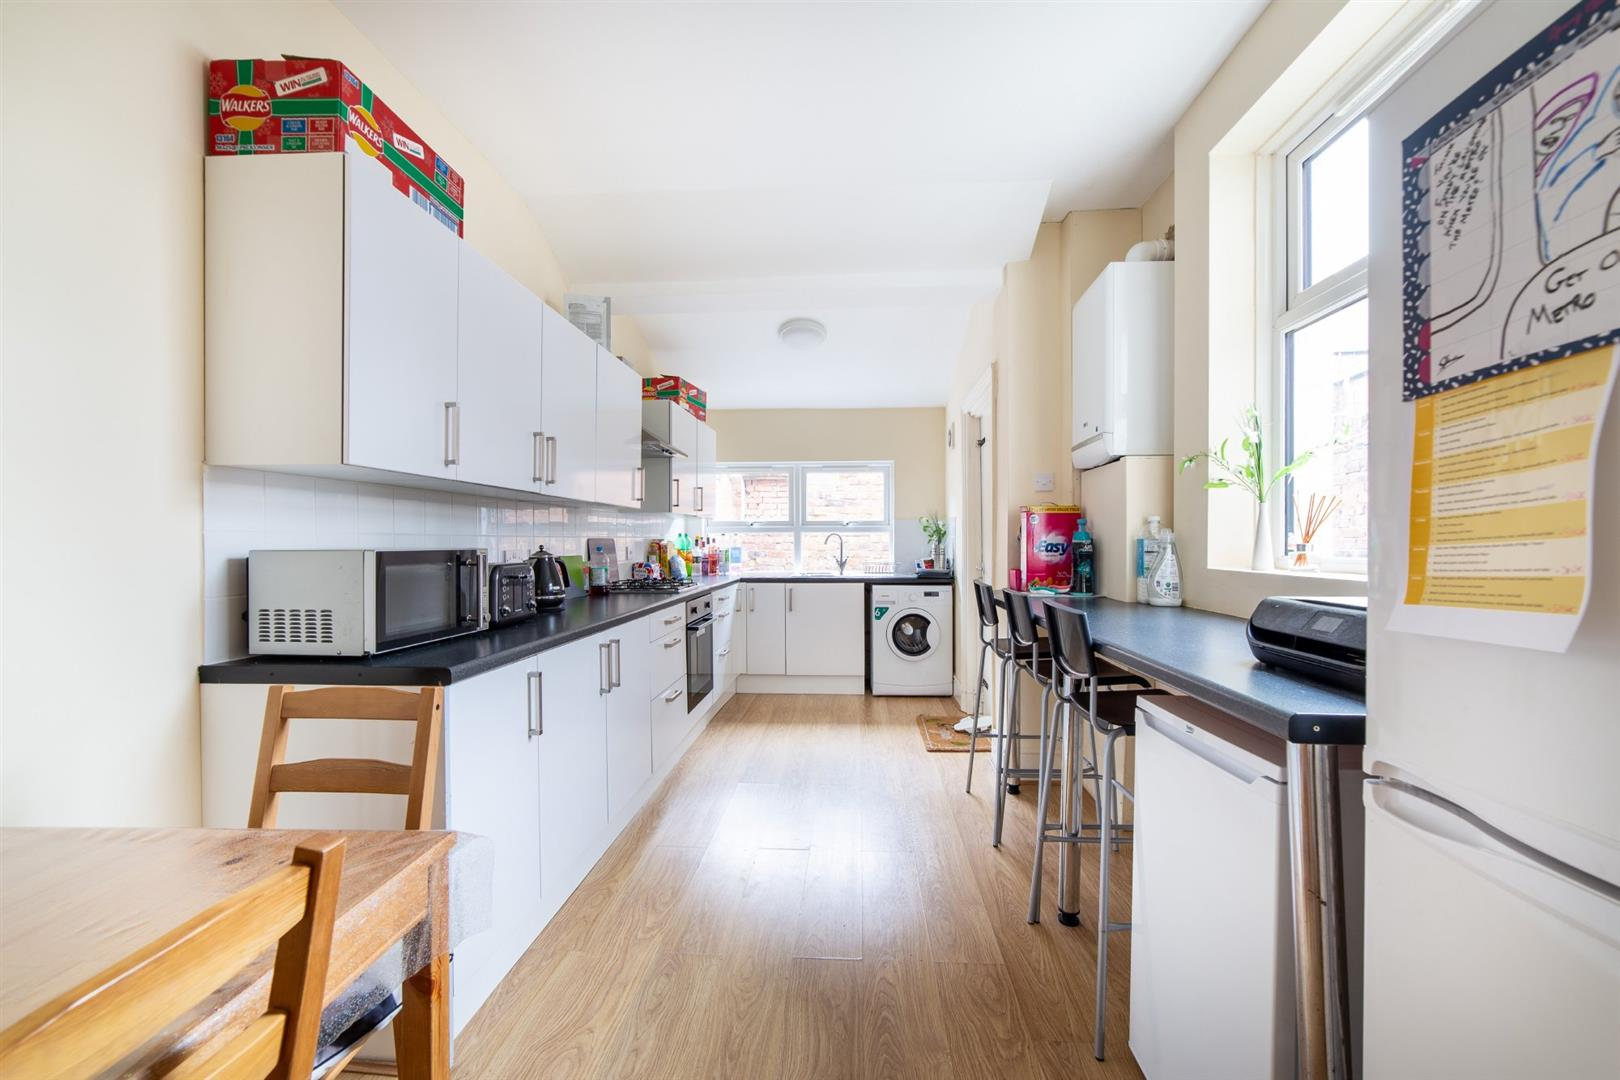 4 bed terraced house for sale in Newcastle Upon Tyne, NE6 5HS - Property Image 1